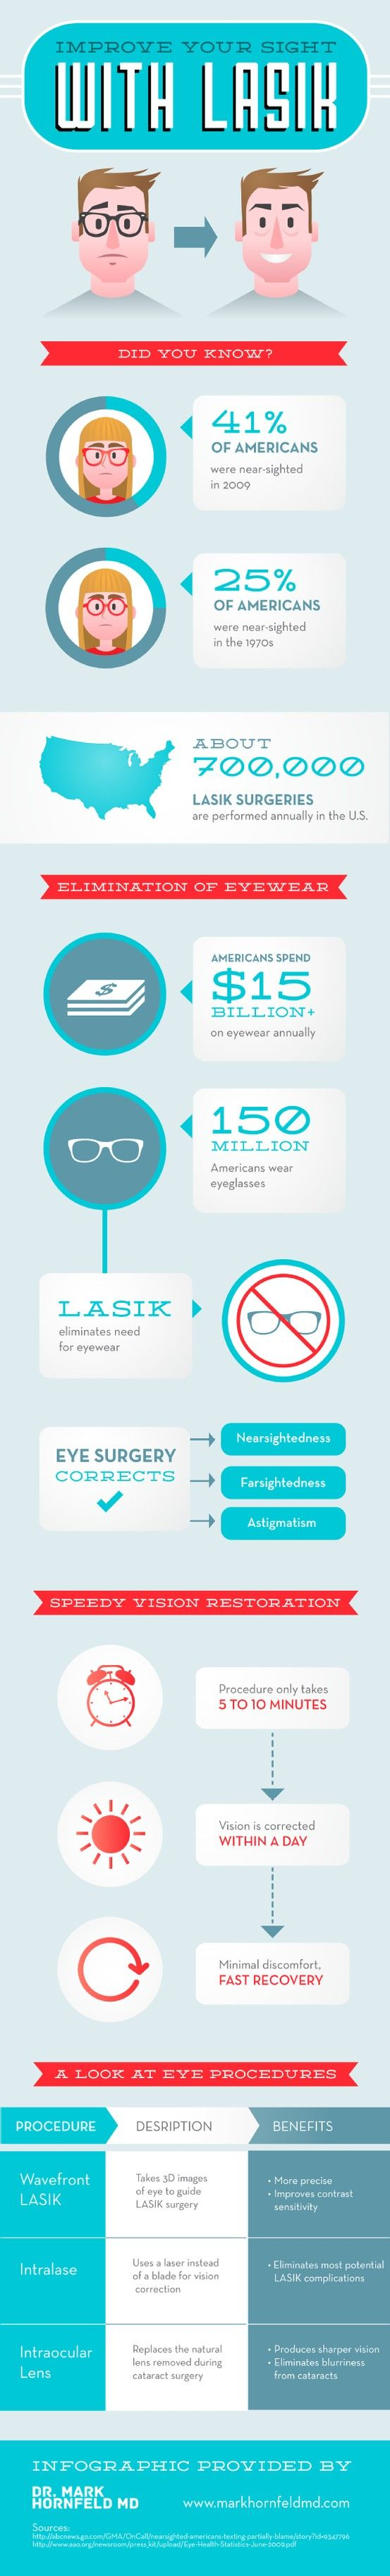 Wavefront Lasik surgery utilizes the power of 3D imagery to improve contrast sensitivity in the eyes and make vision more precise. This infographic from an NYC Lasik surgeon has more facts about laser eye procedures. Source: http://www.markhornfeldmd.com/670563/2013/03/26/improve-your-sight-with-lasik.html